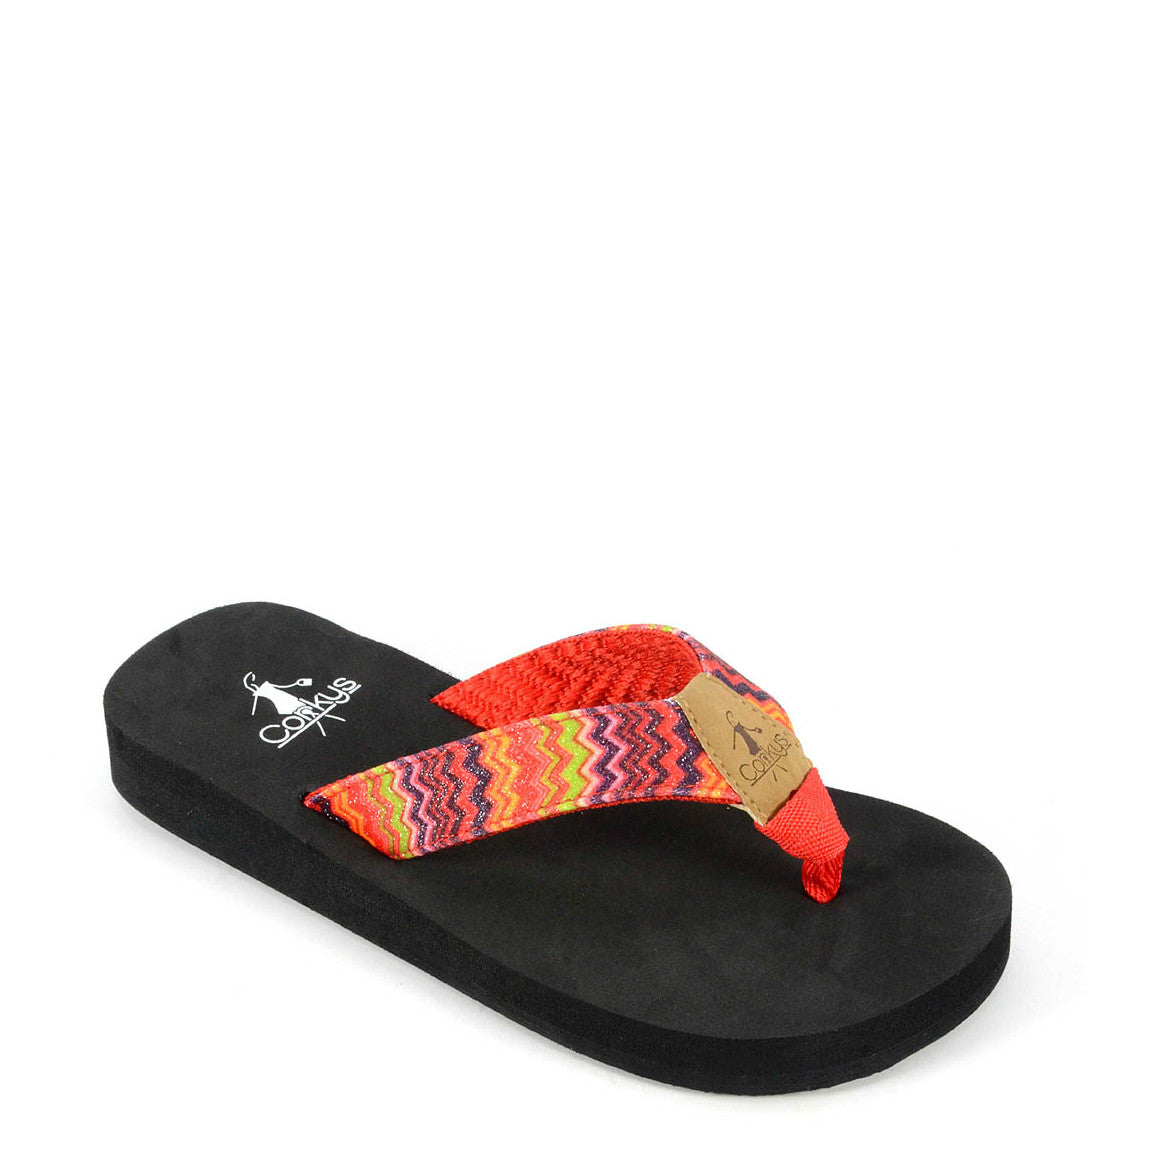 Corkys Kid's Fish Flip Flop - Red Multi 20-8078 - ShoeShackOnline